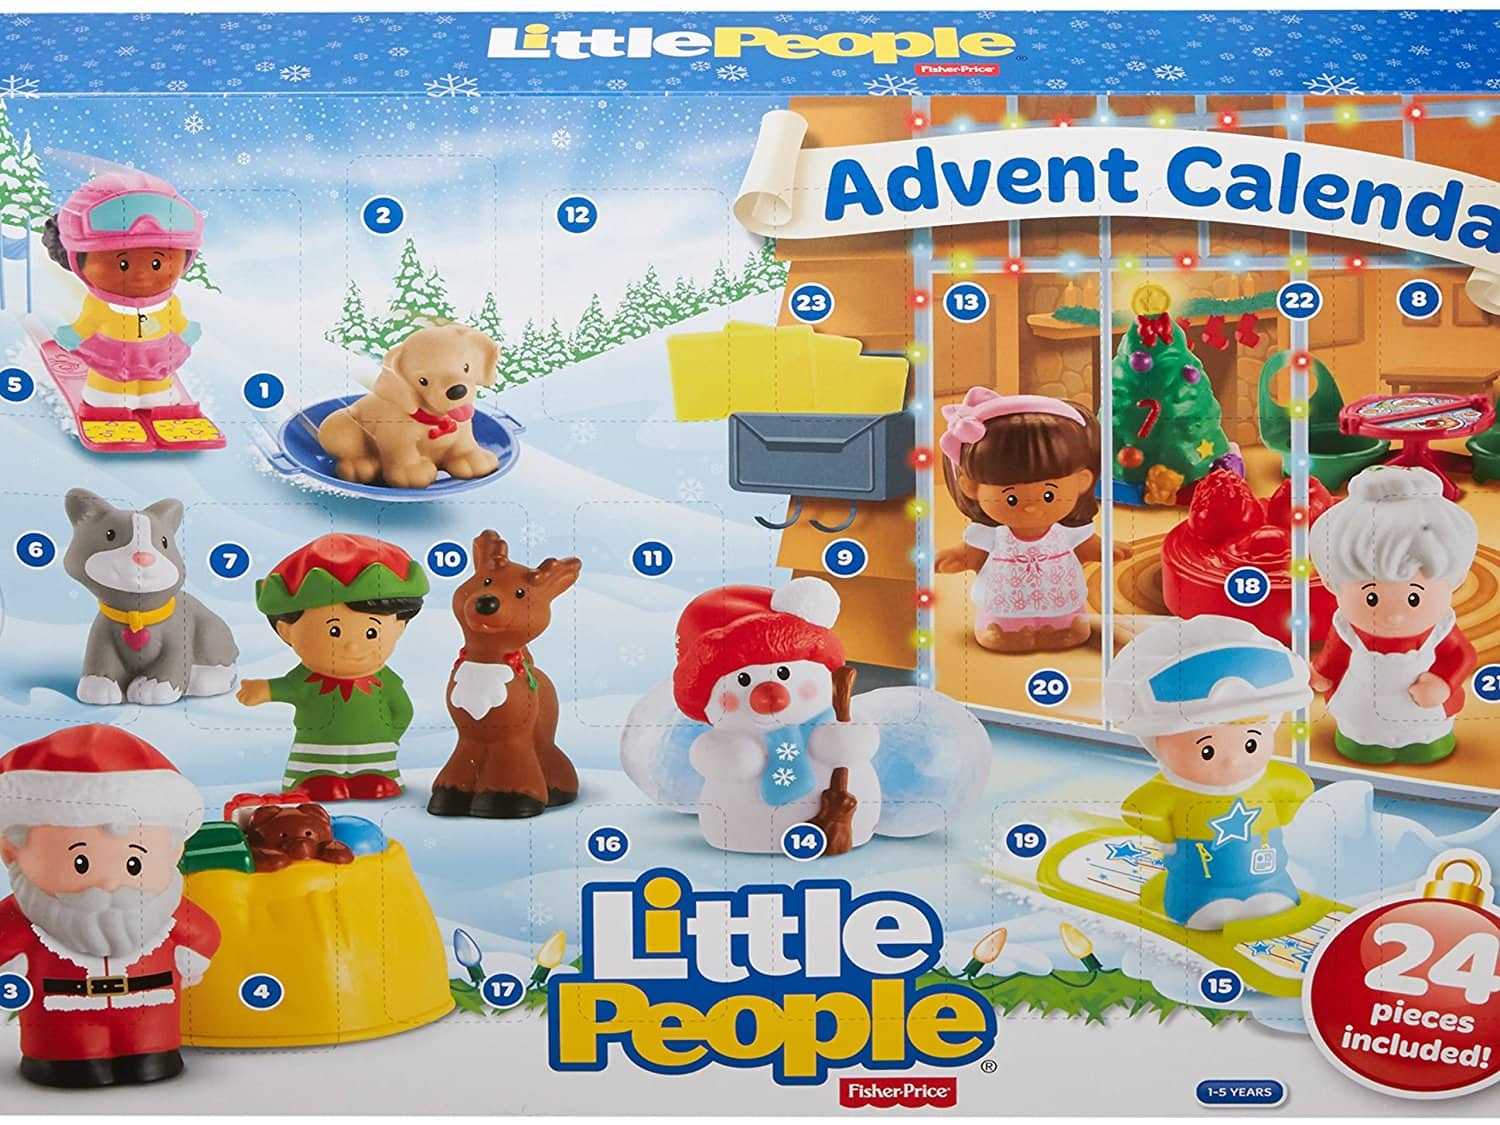 Little People Advent Calender BACK IN STOCK $12